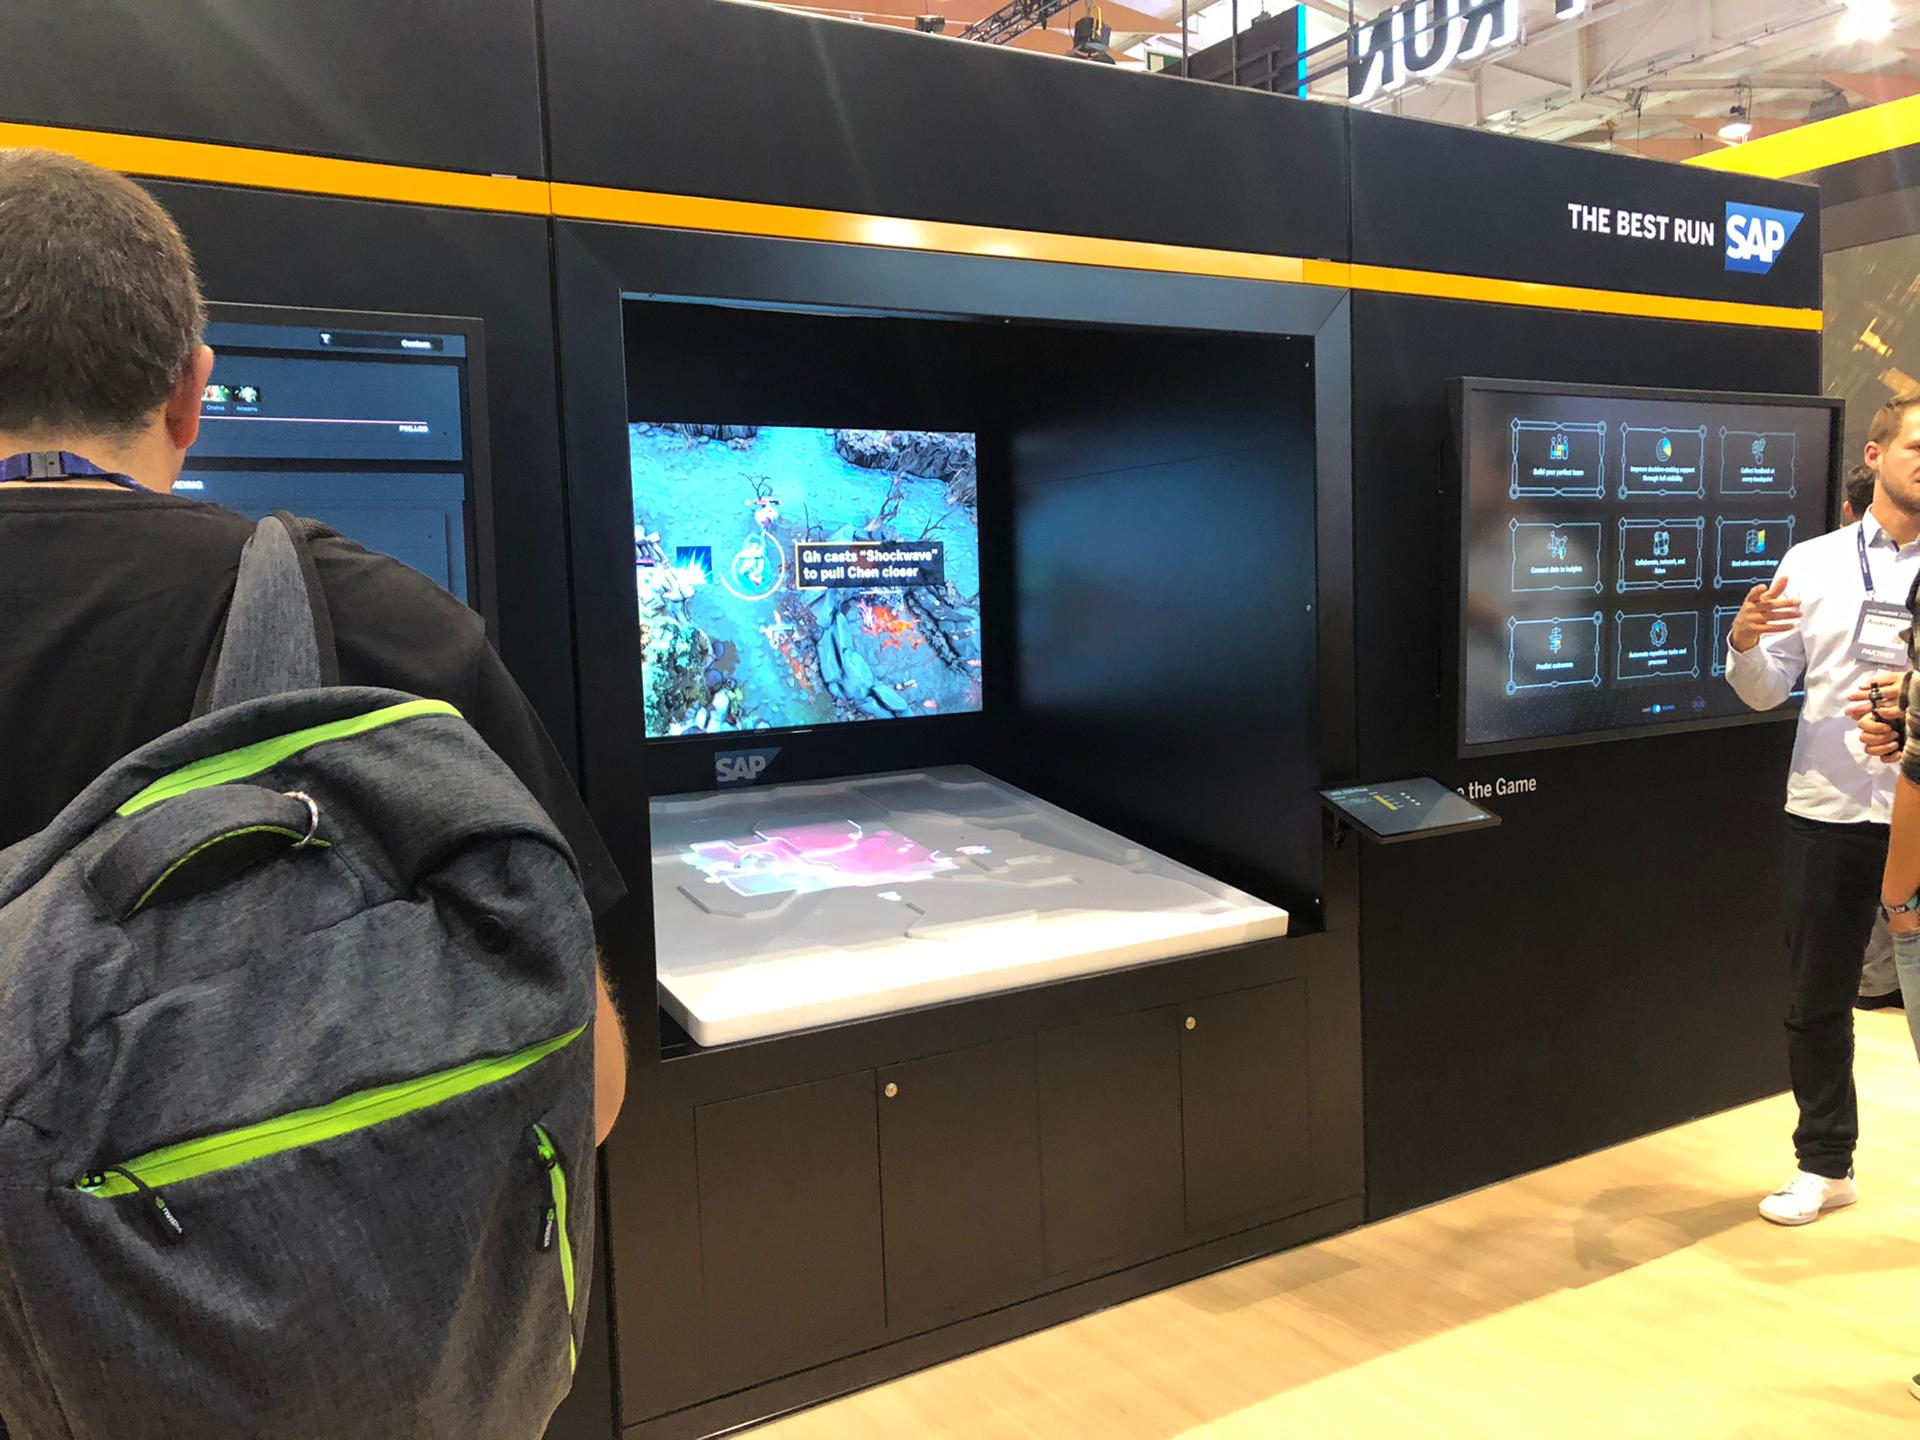 Ilustrating that AI powered analytics to improve eSports were on display, in particular, a SAP powered solution built to help Team Liquid from a very well known game outperform competitors.